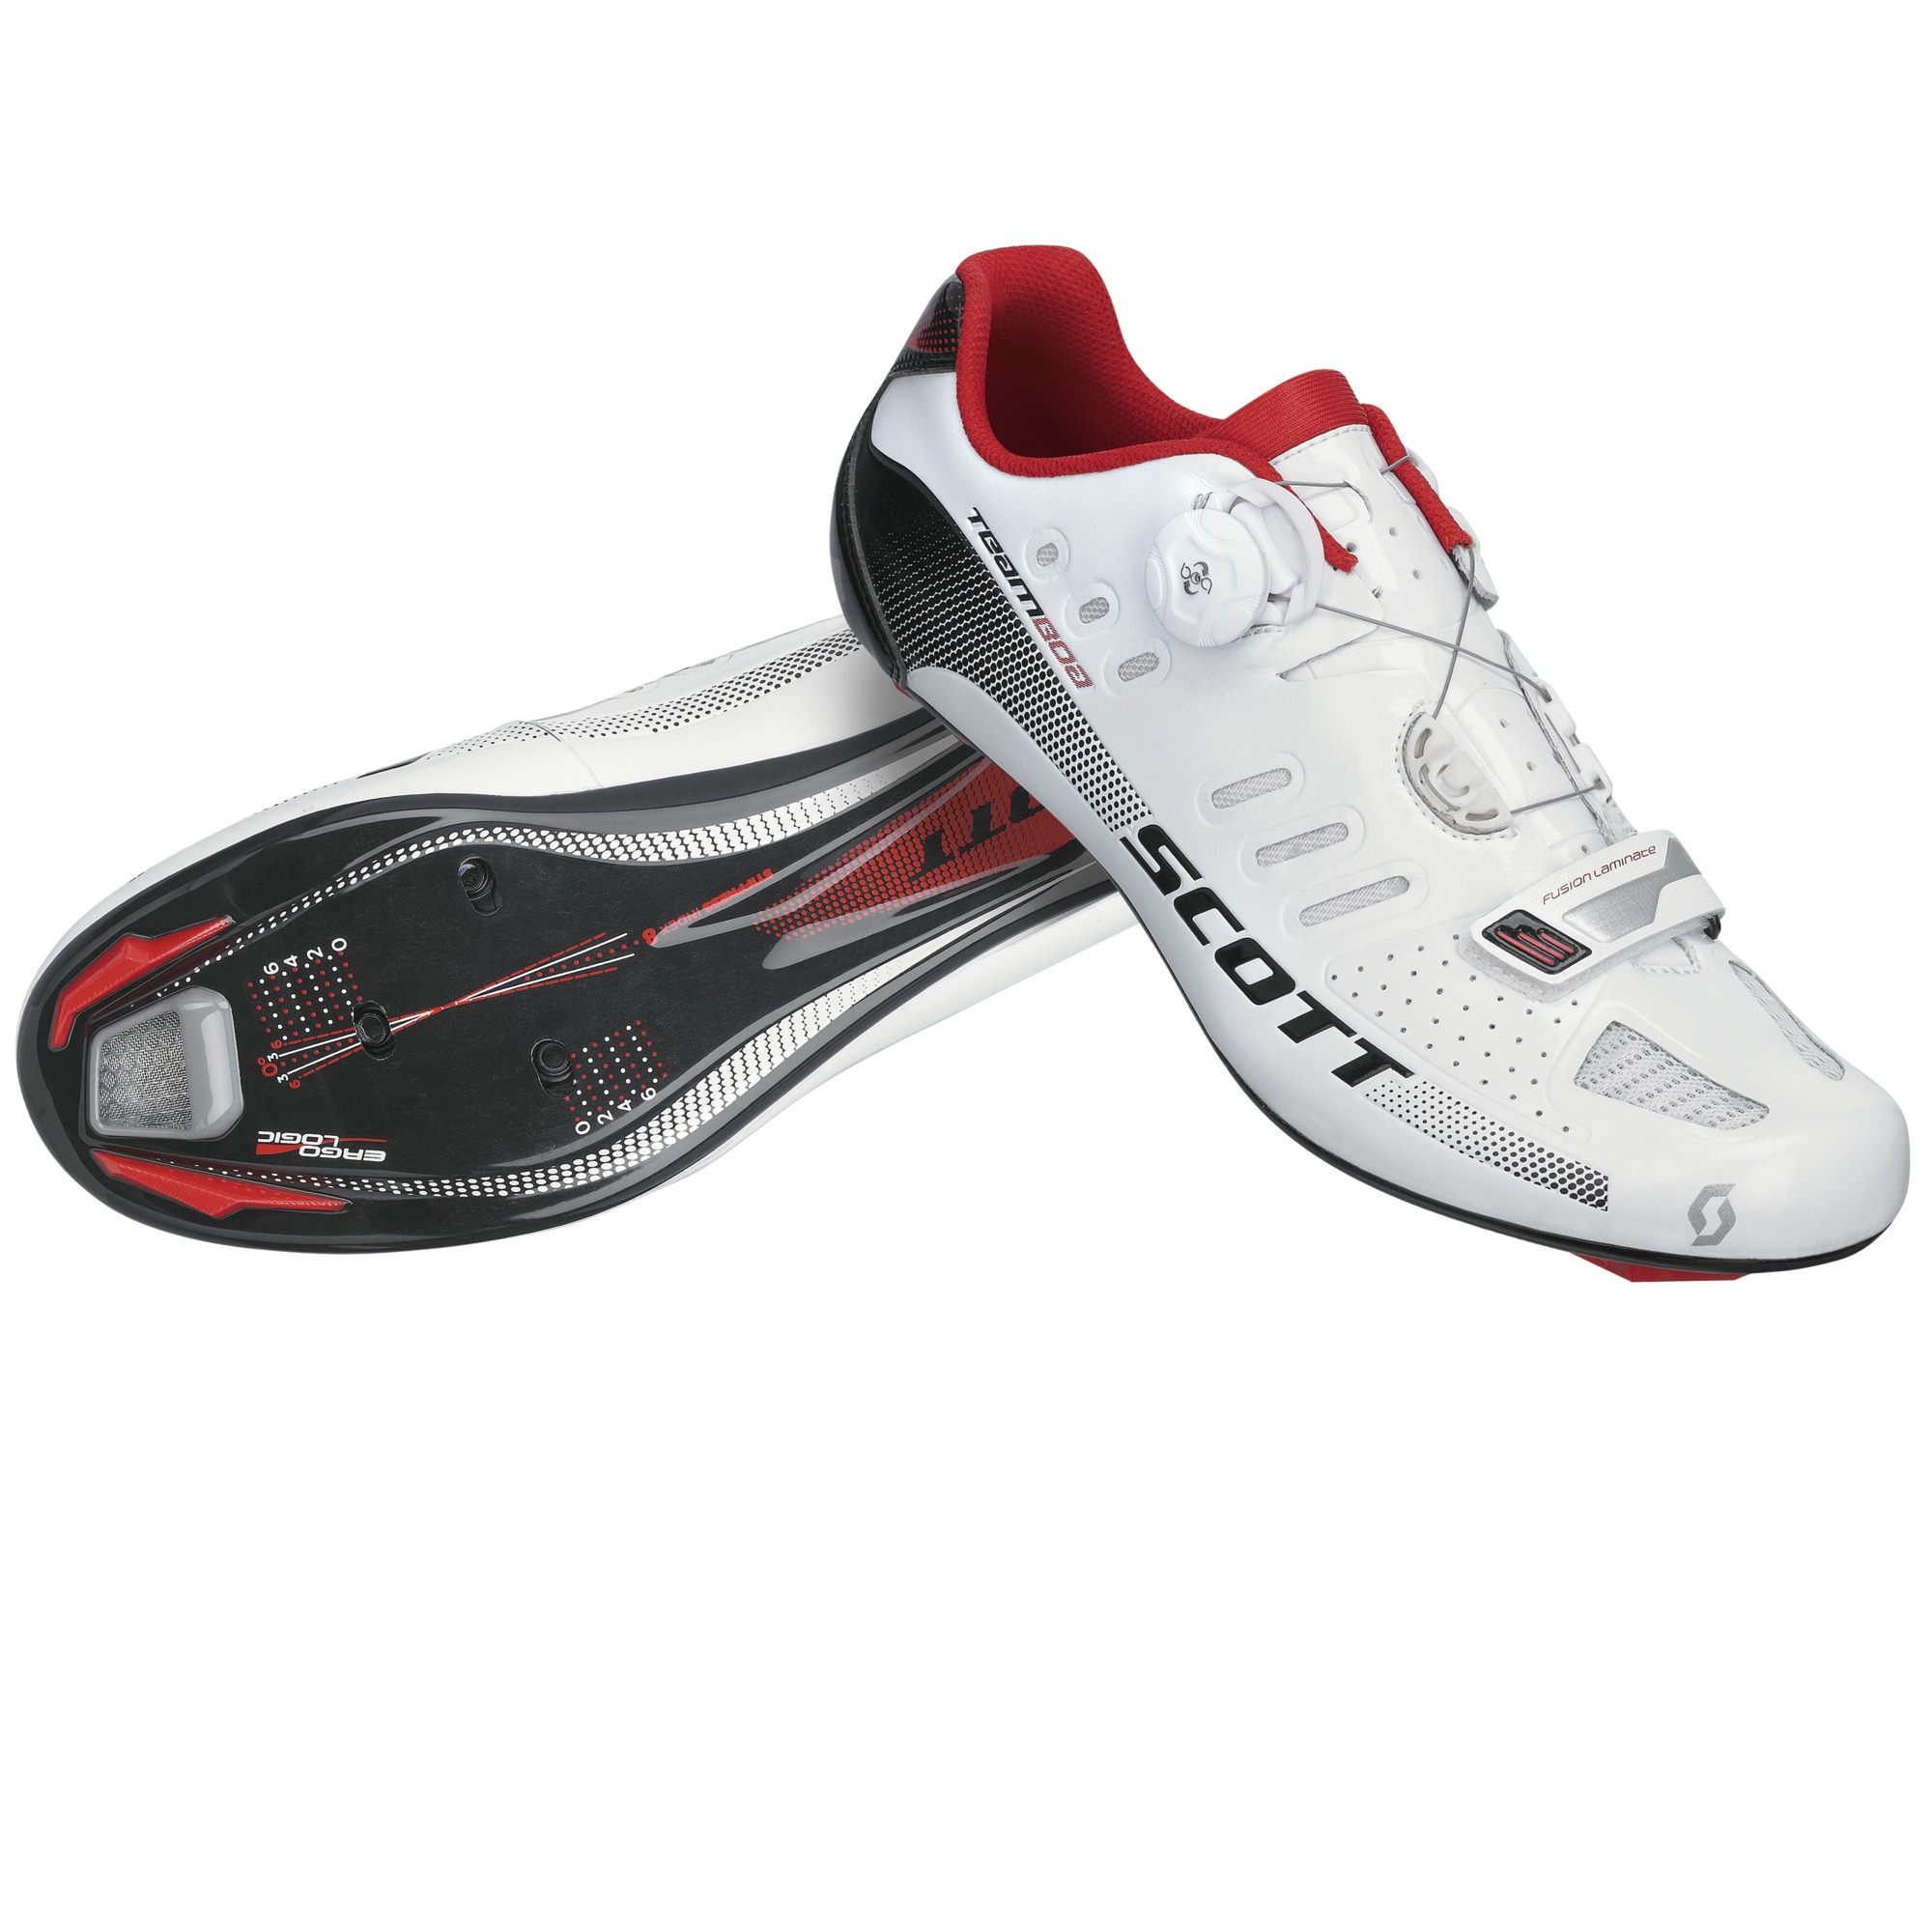 SCOTT Tretry Road Team Boa white/black gloss 41 2015